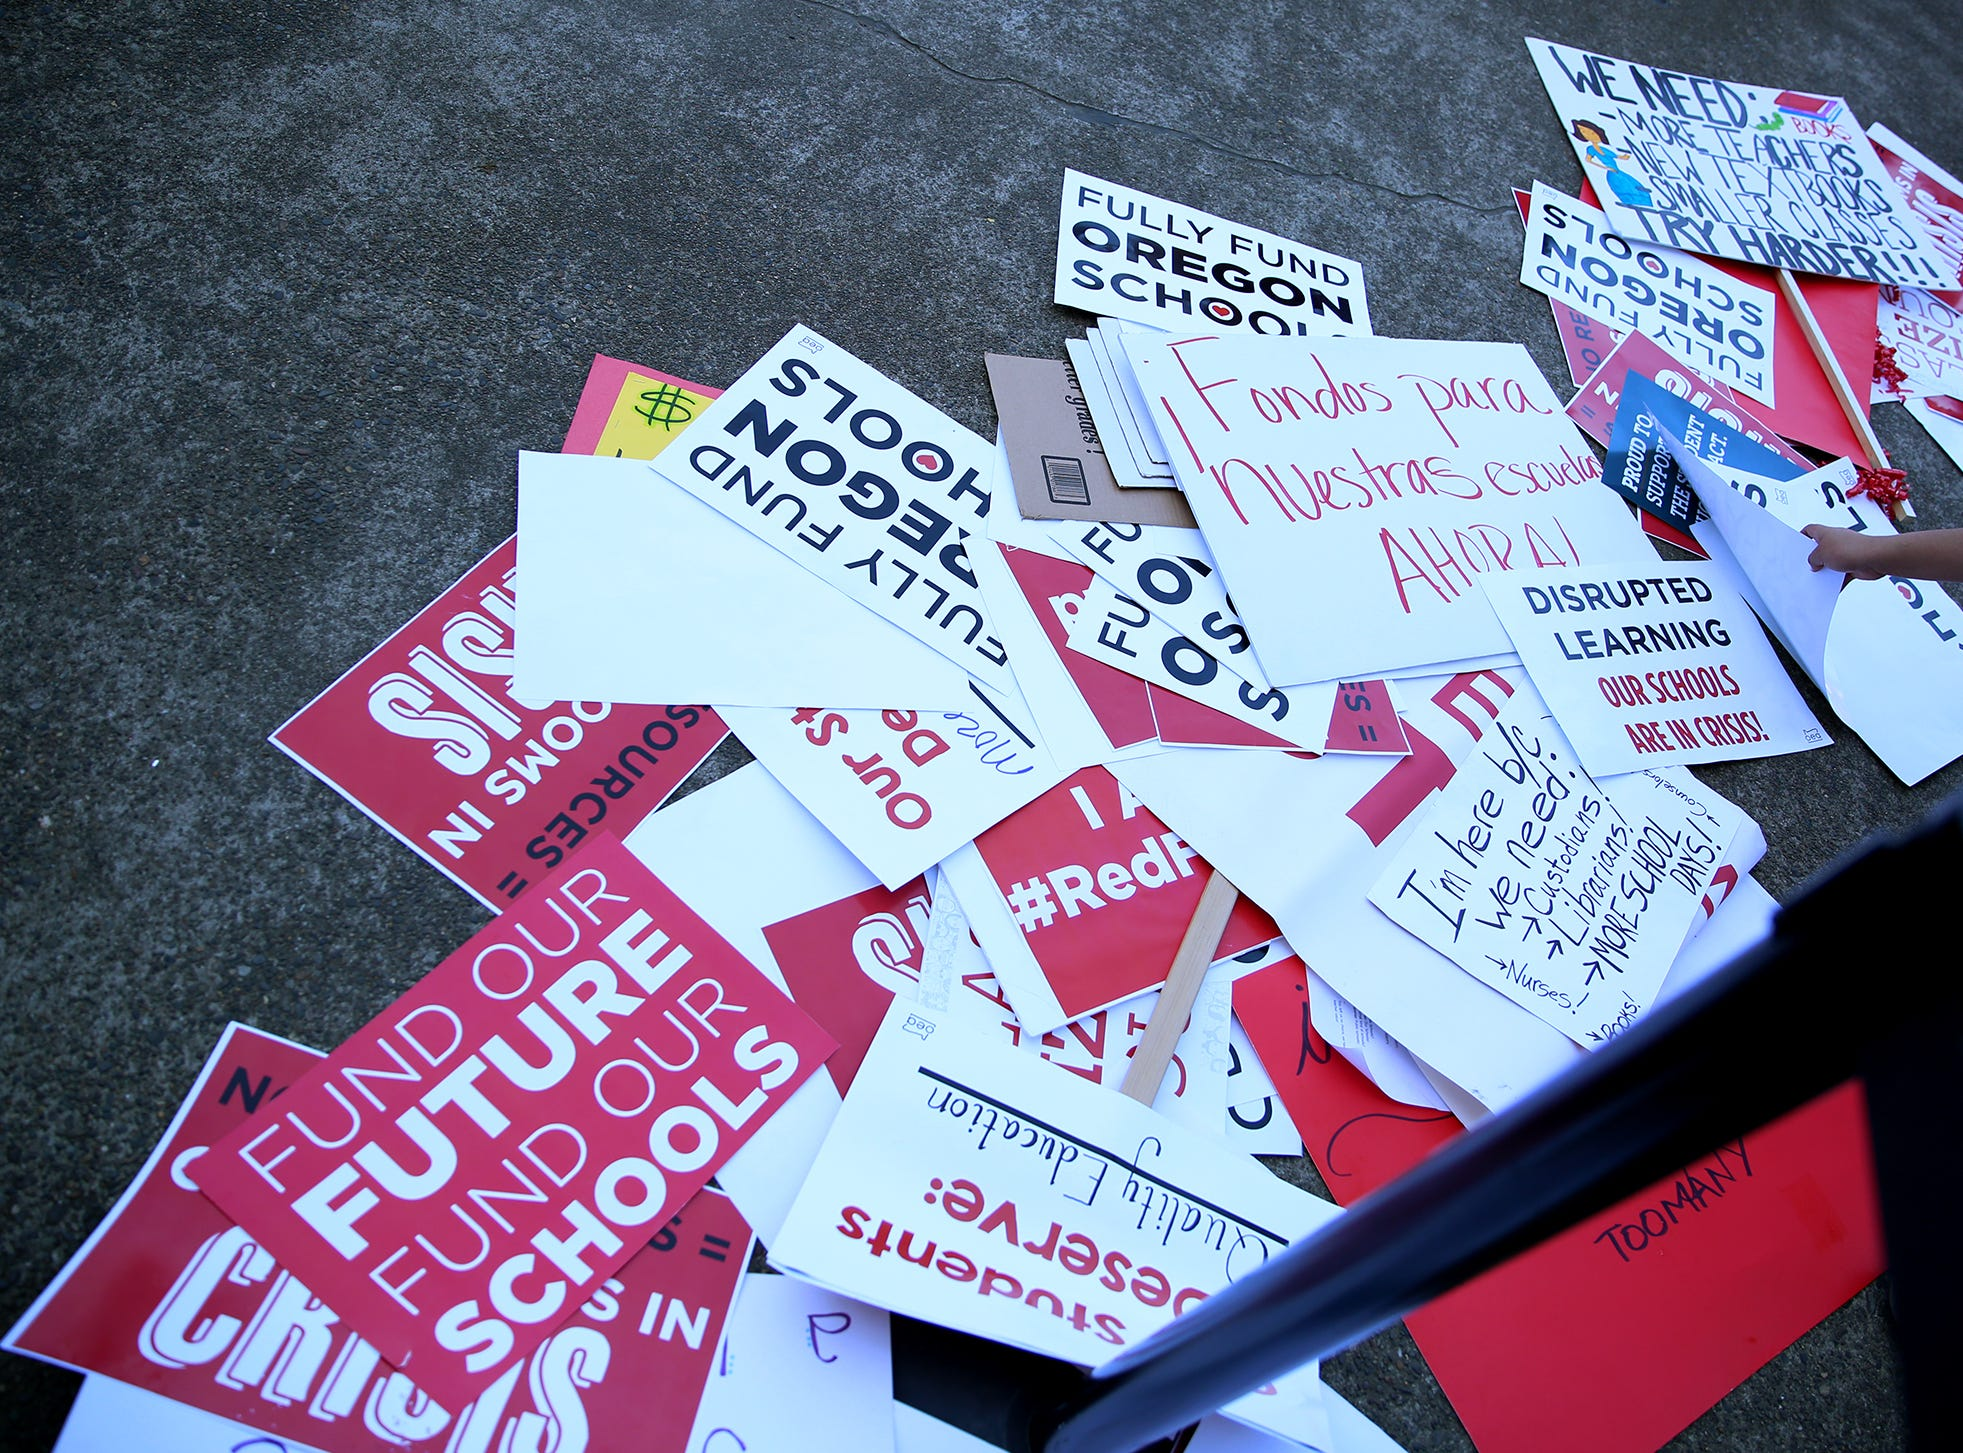 Signs are left on the steps of the Capitol during a rally for education funding where thousands of teachers and education activists marched from Riverfront Park to the Oregon State Capitol in Salem on May 8, 2019.